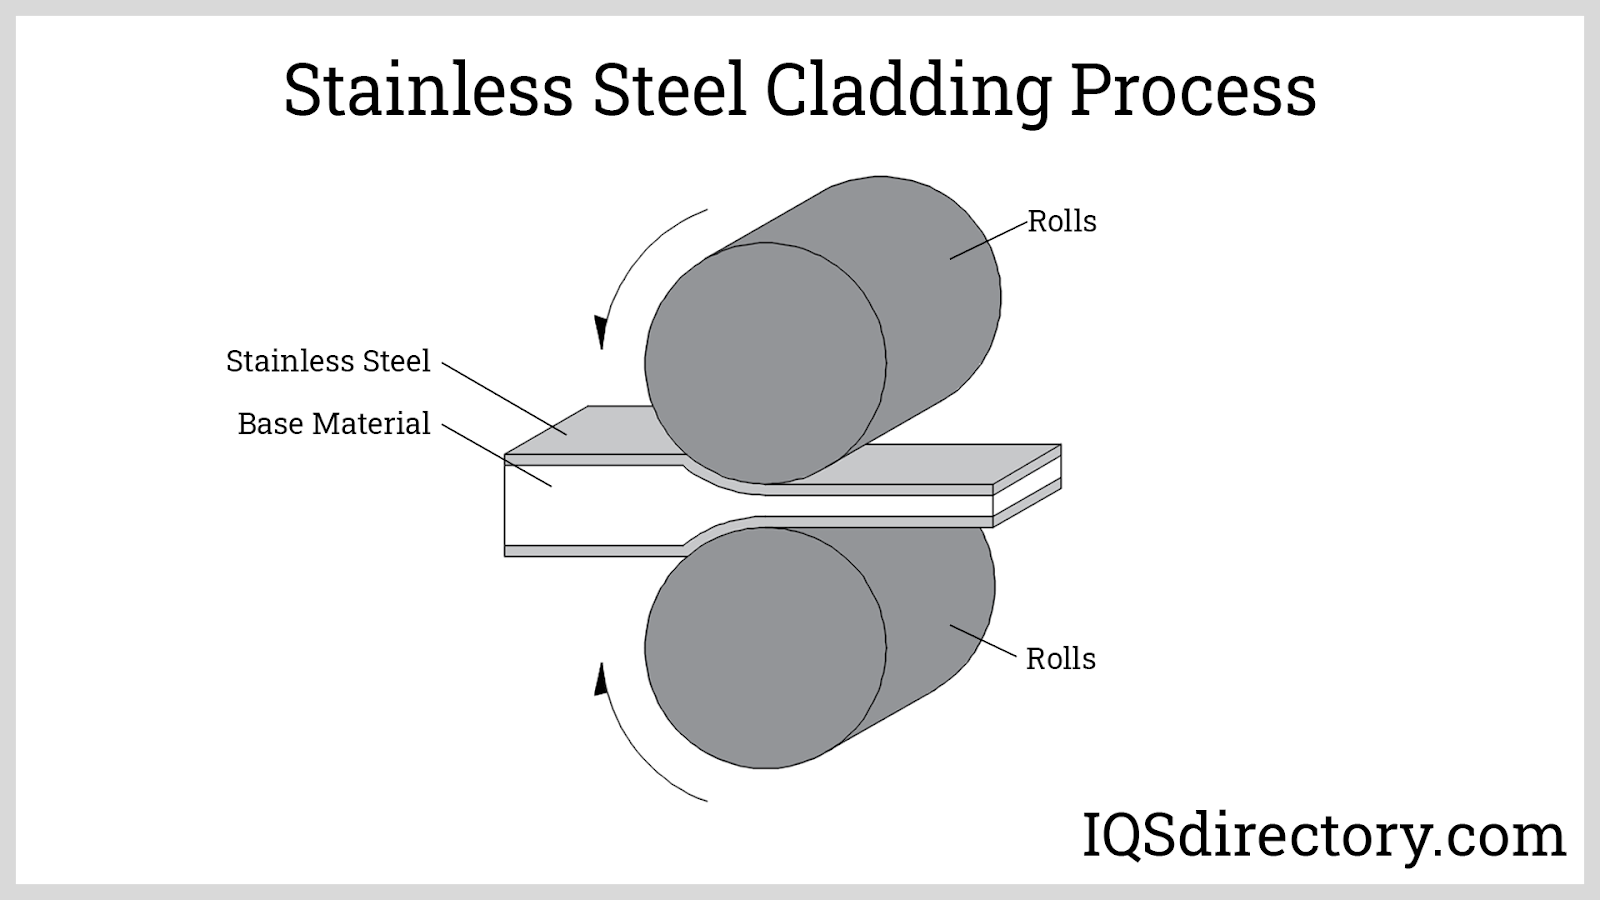 Stainless Steel Cladding Process